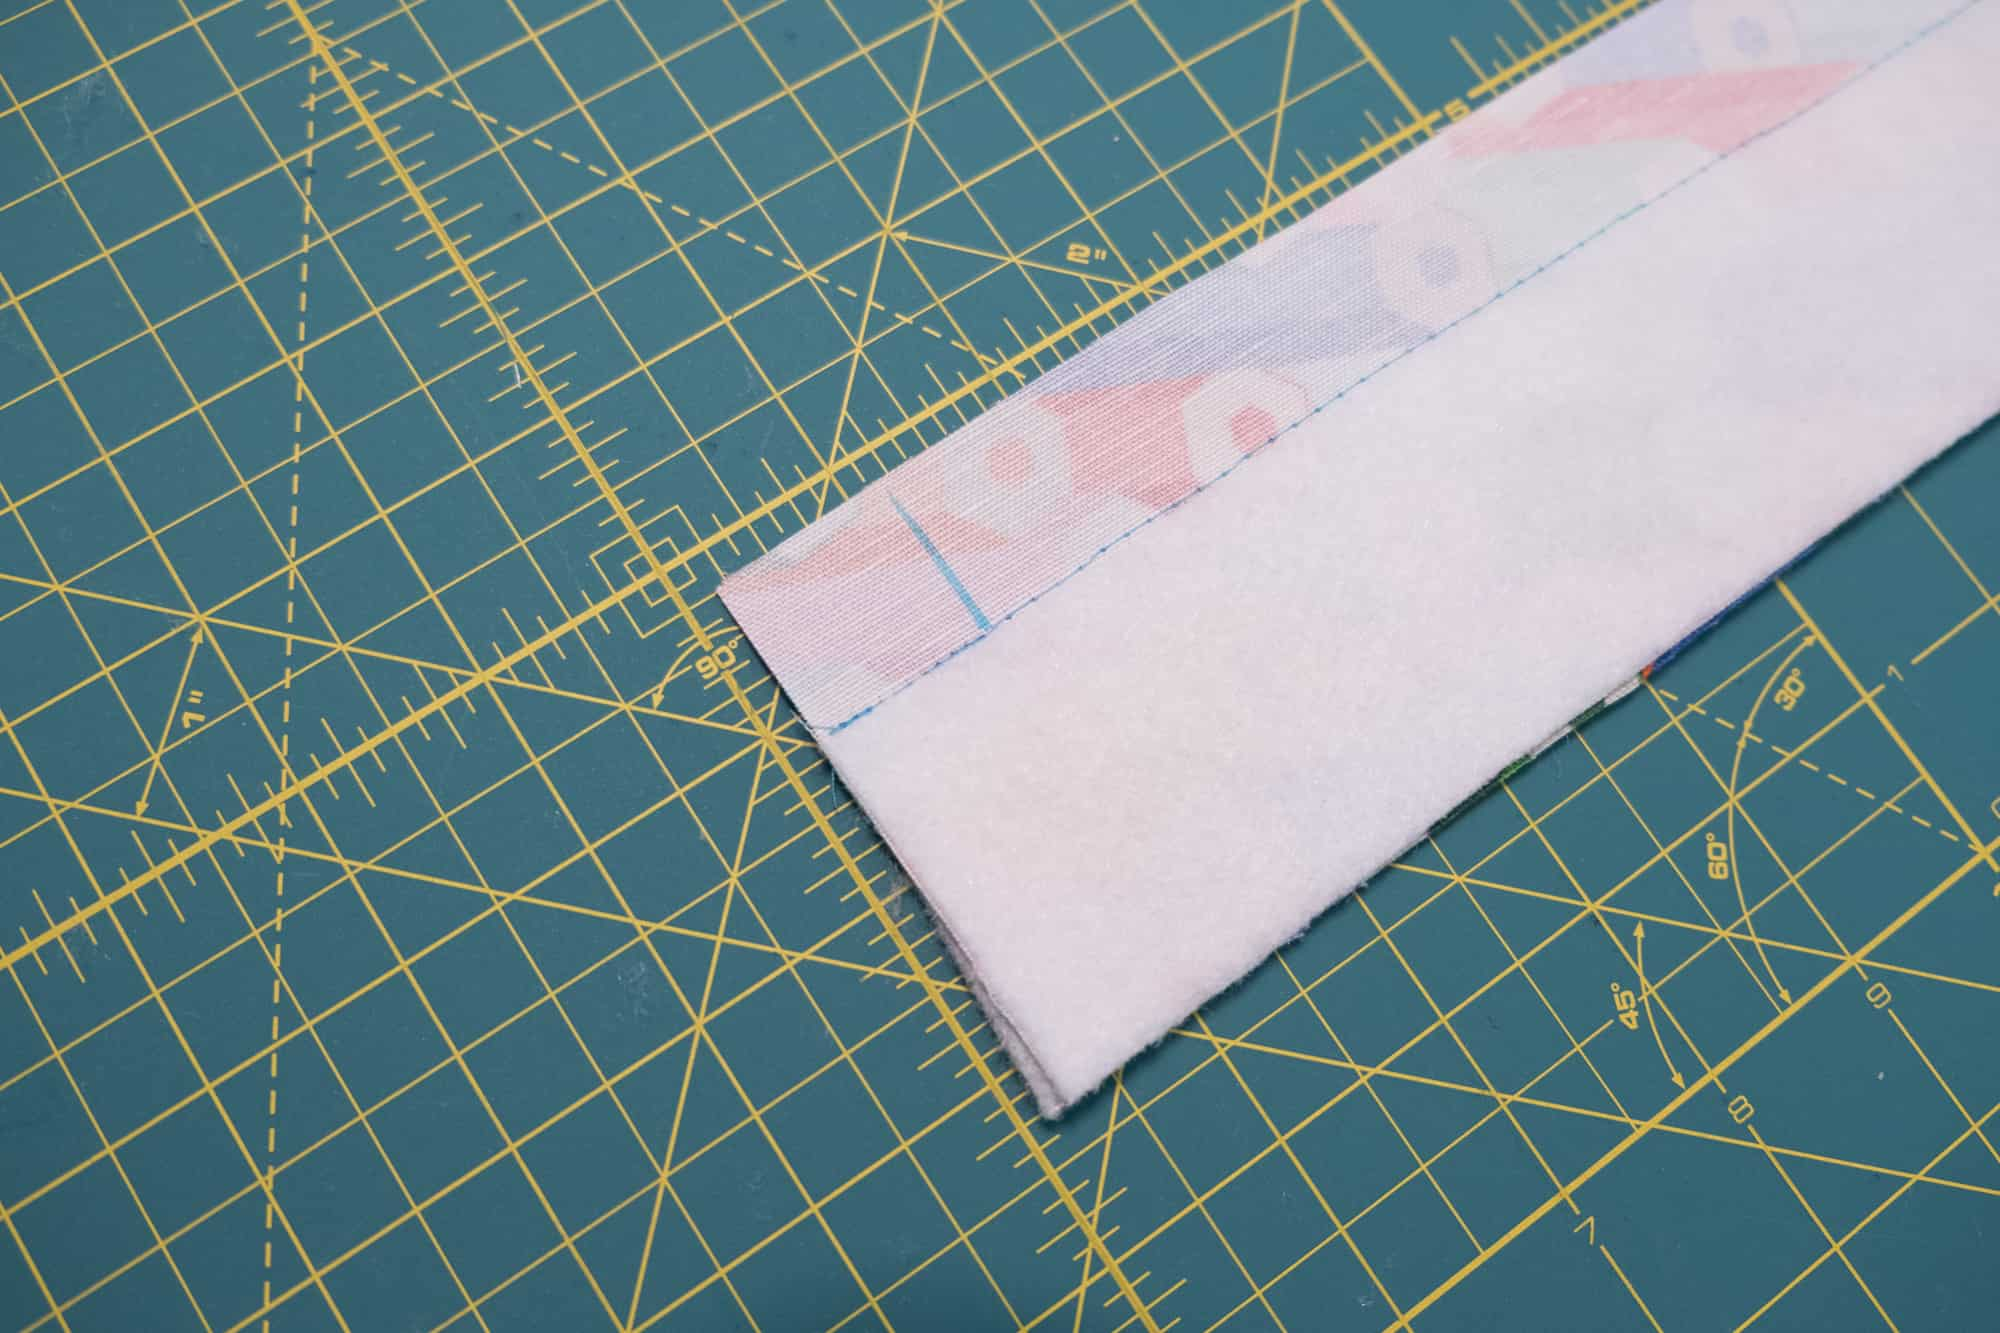 Make a mark 1 inch in from each short edge on your panels | Spoonflower Blog